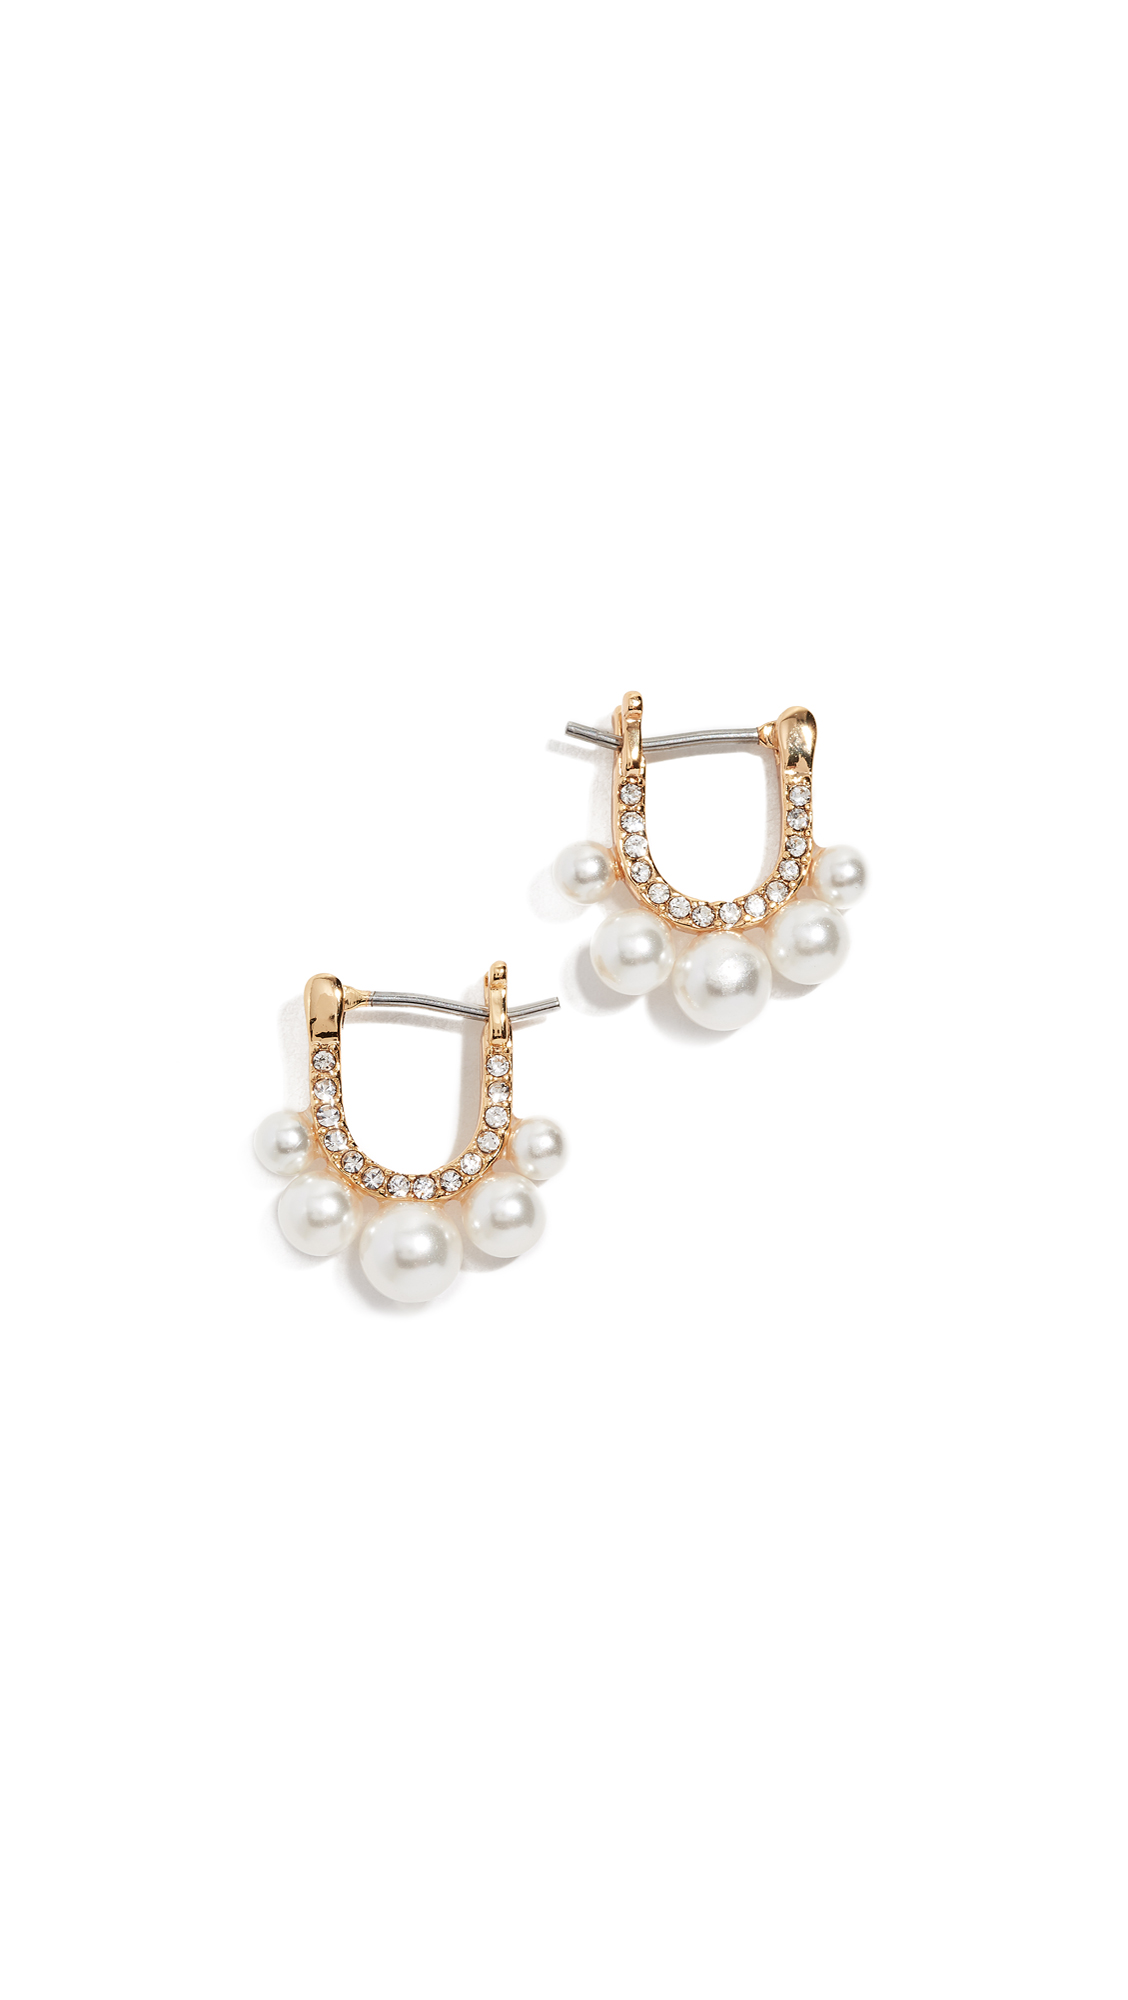 Rebecca Minkoff Sophia Five Imitation Pearl Huggie Earrings In Gold